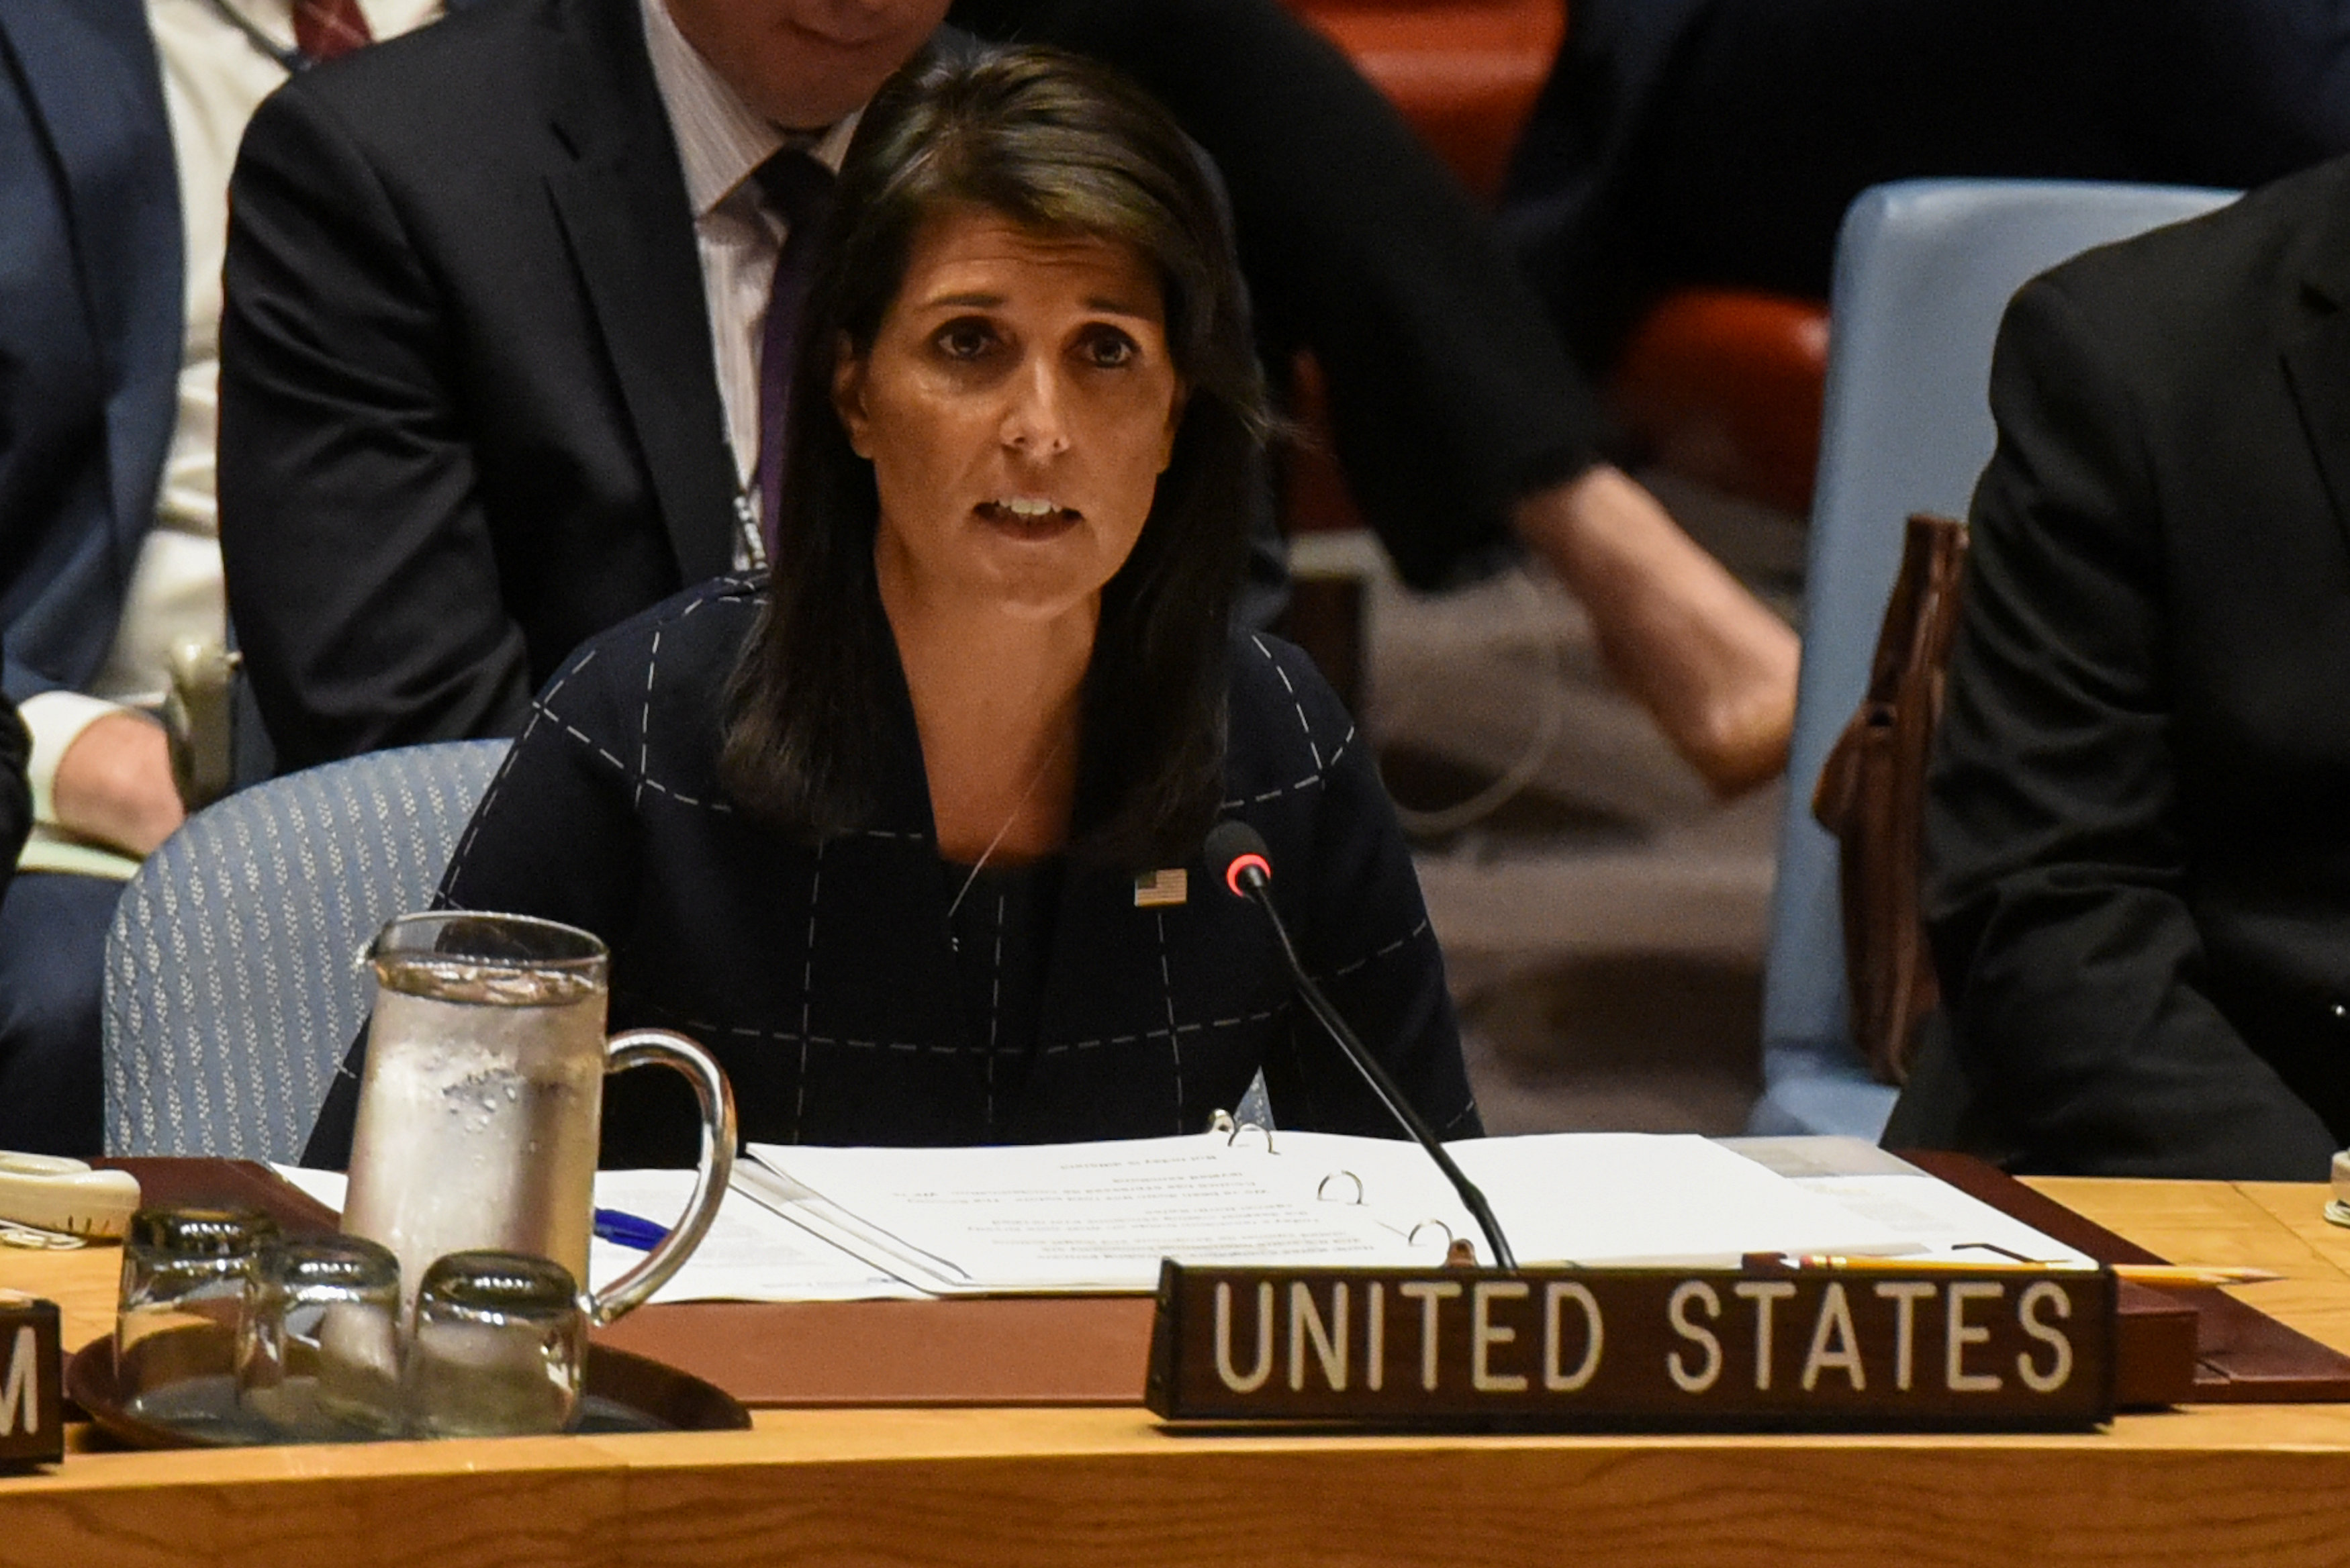 U.S. Ambassador to the UN, Nikki Haley, delivers remarks during a United Nations Security Council meeting on North Korea in New York City on Sept. 11, 2017. (REUTERS/Stephanie Keith)